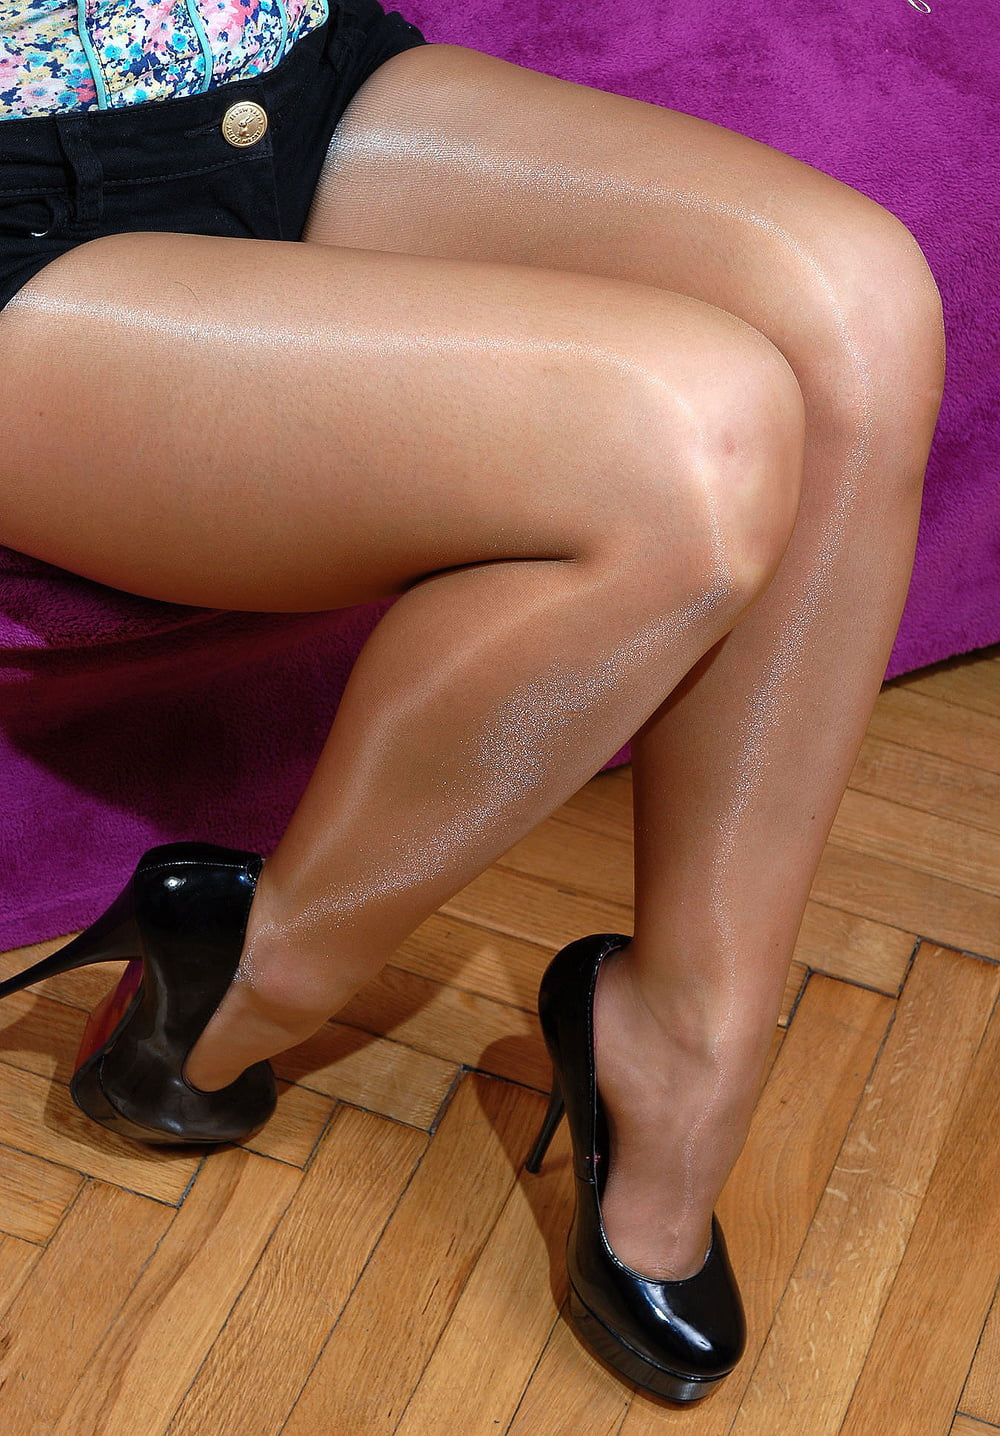 soon-my-free-pantyhose-gallery-was